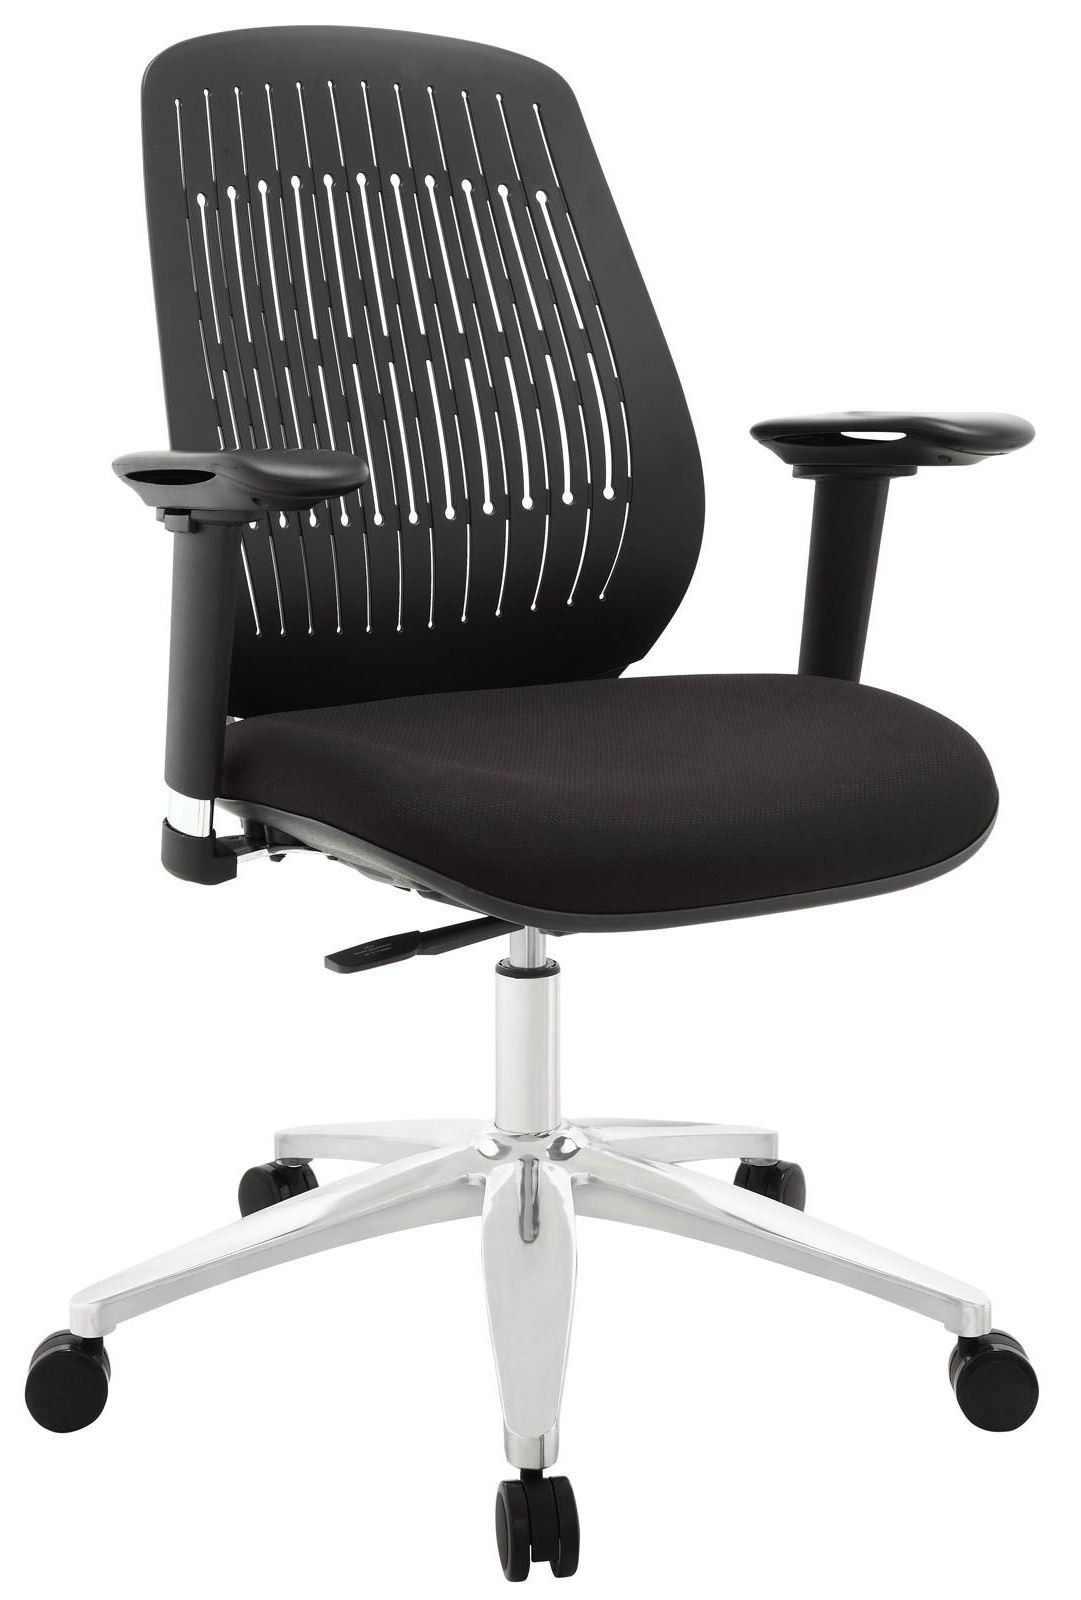 reveal black premium office chair from renegade eei 1189